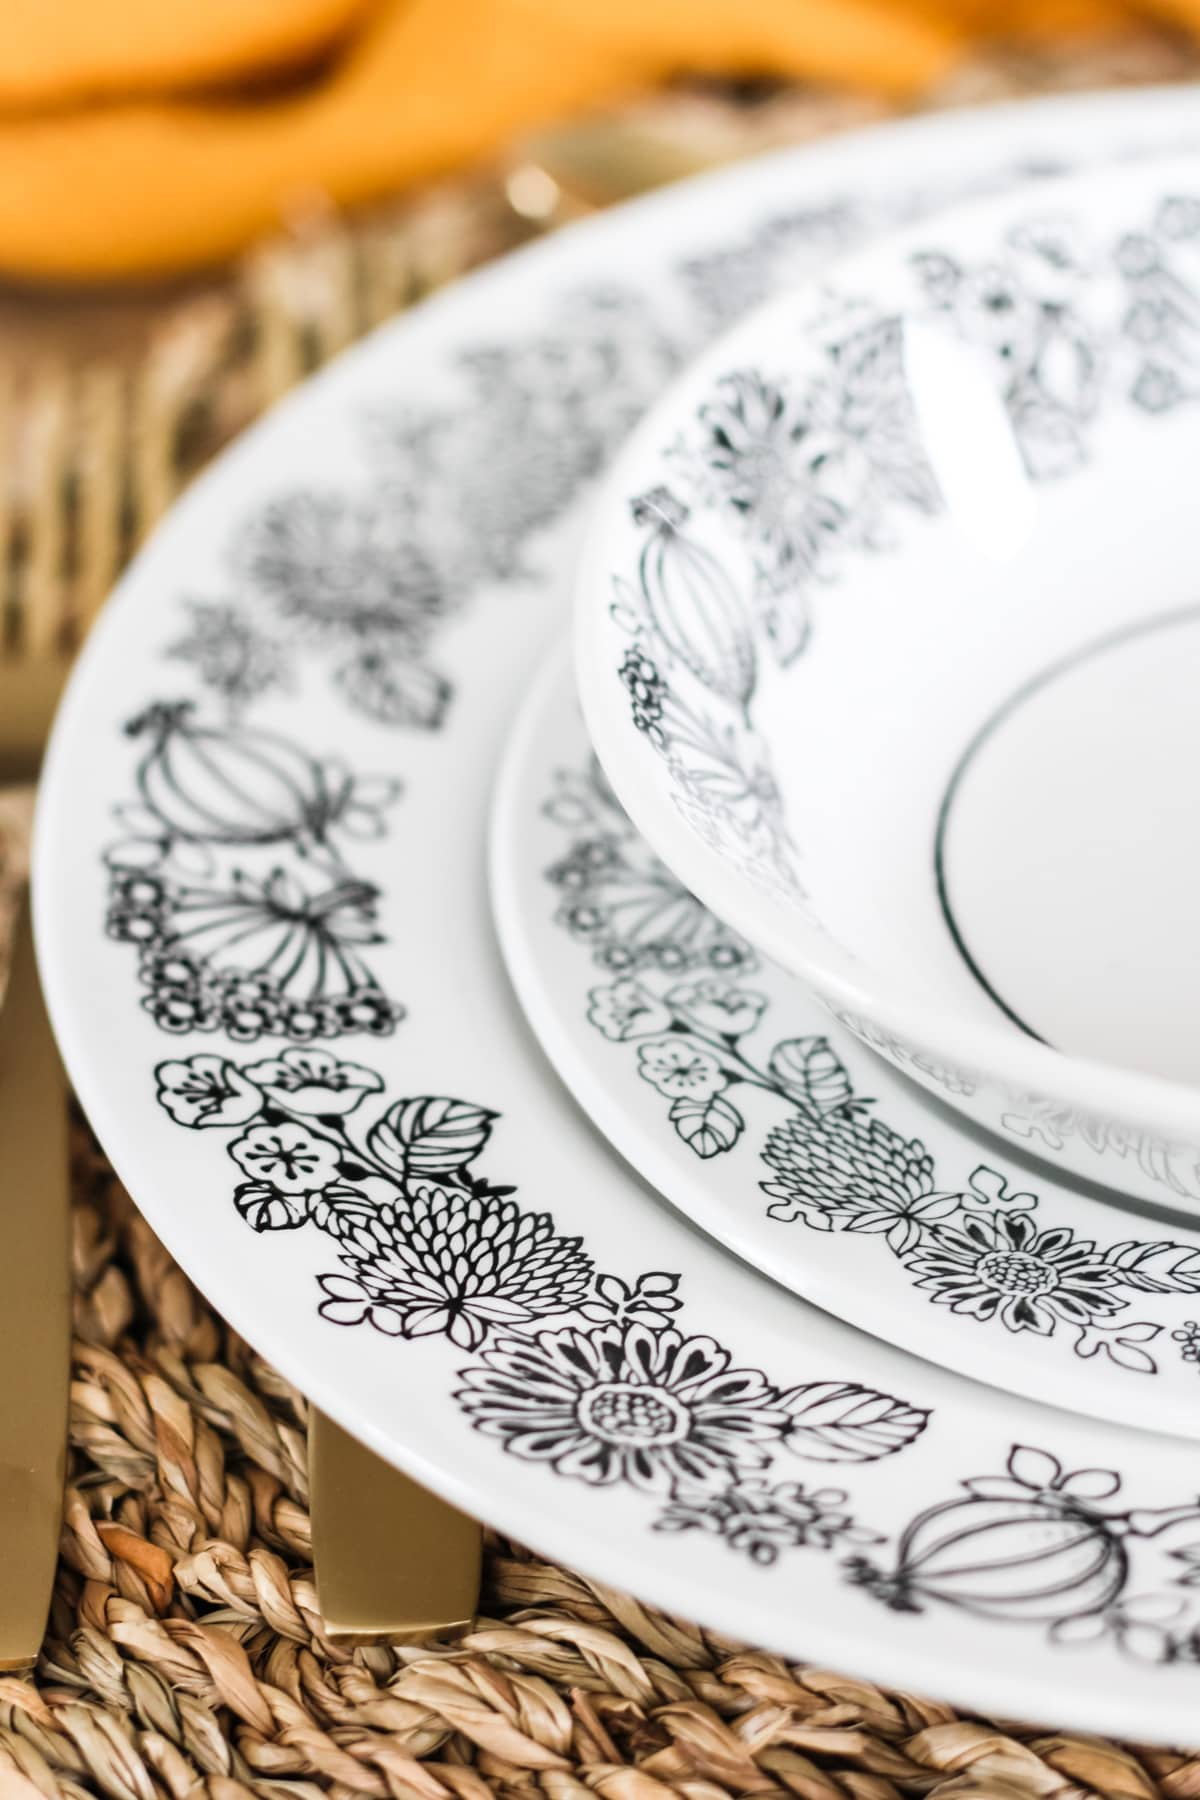 a close up of a stack of black and white flower patterned dishes sitting on a woven grass placemat